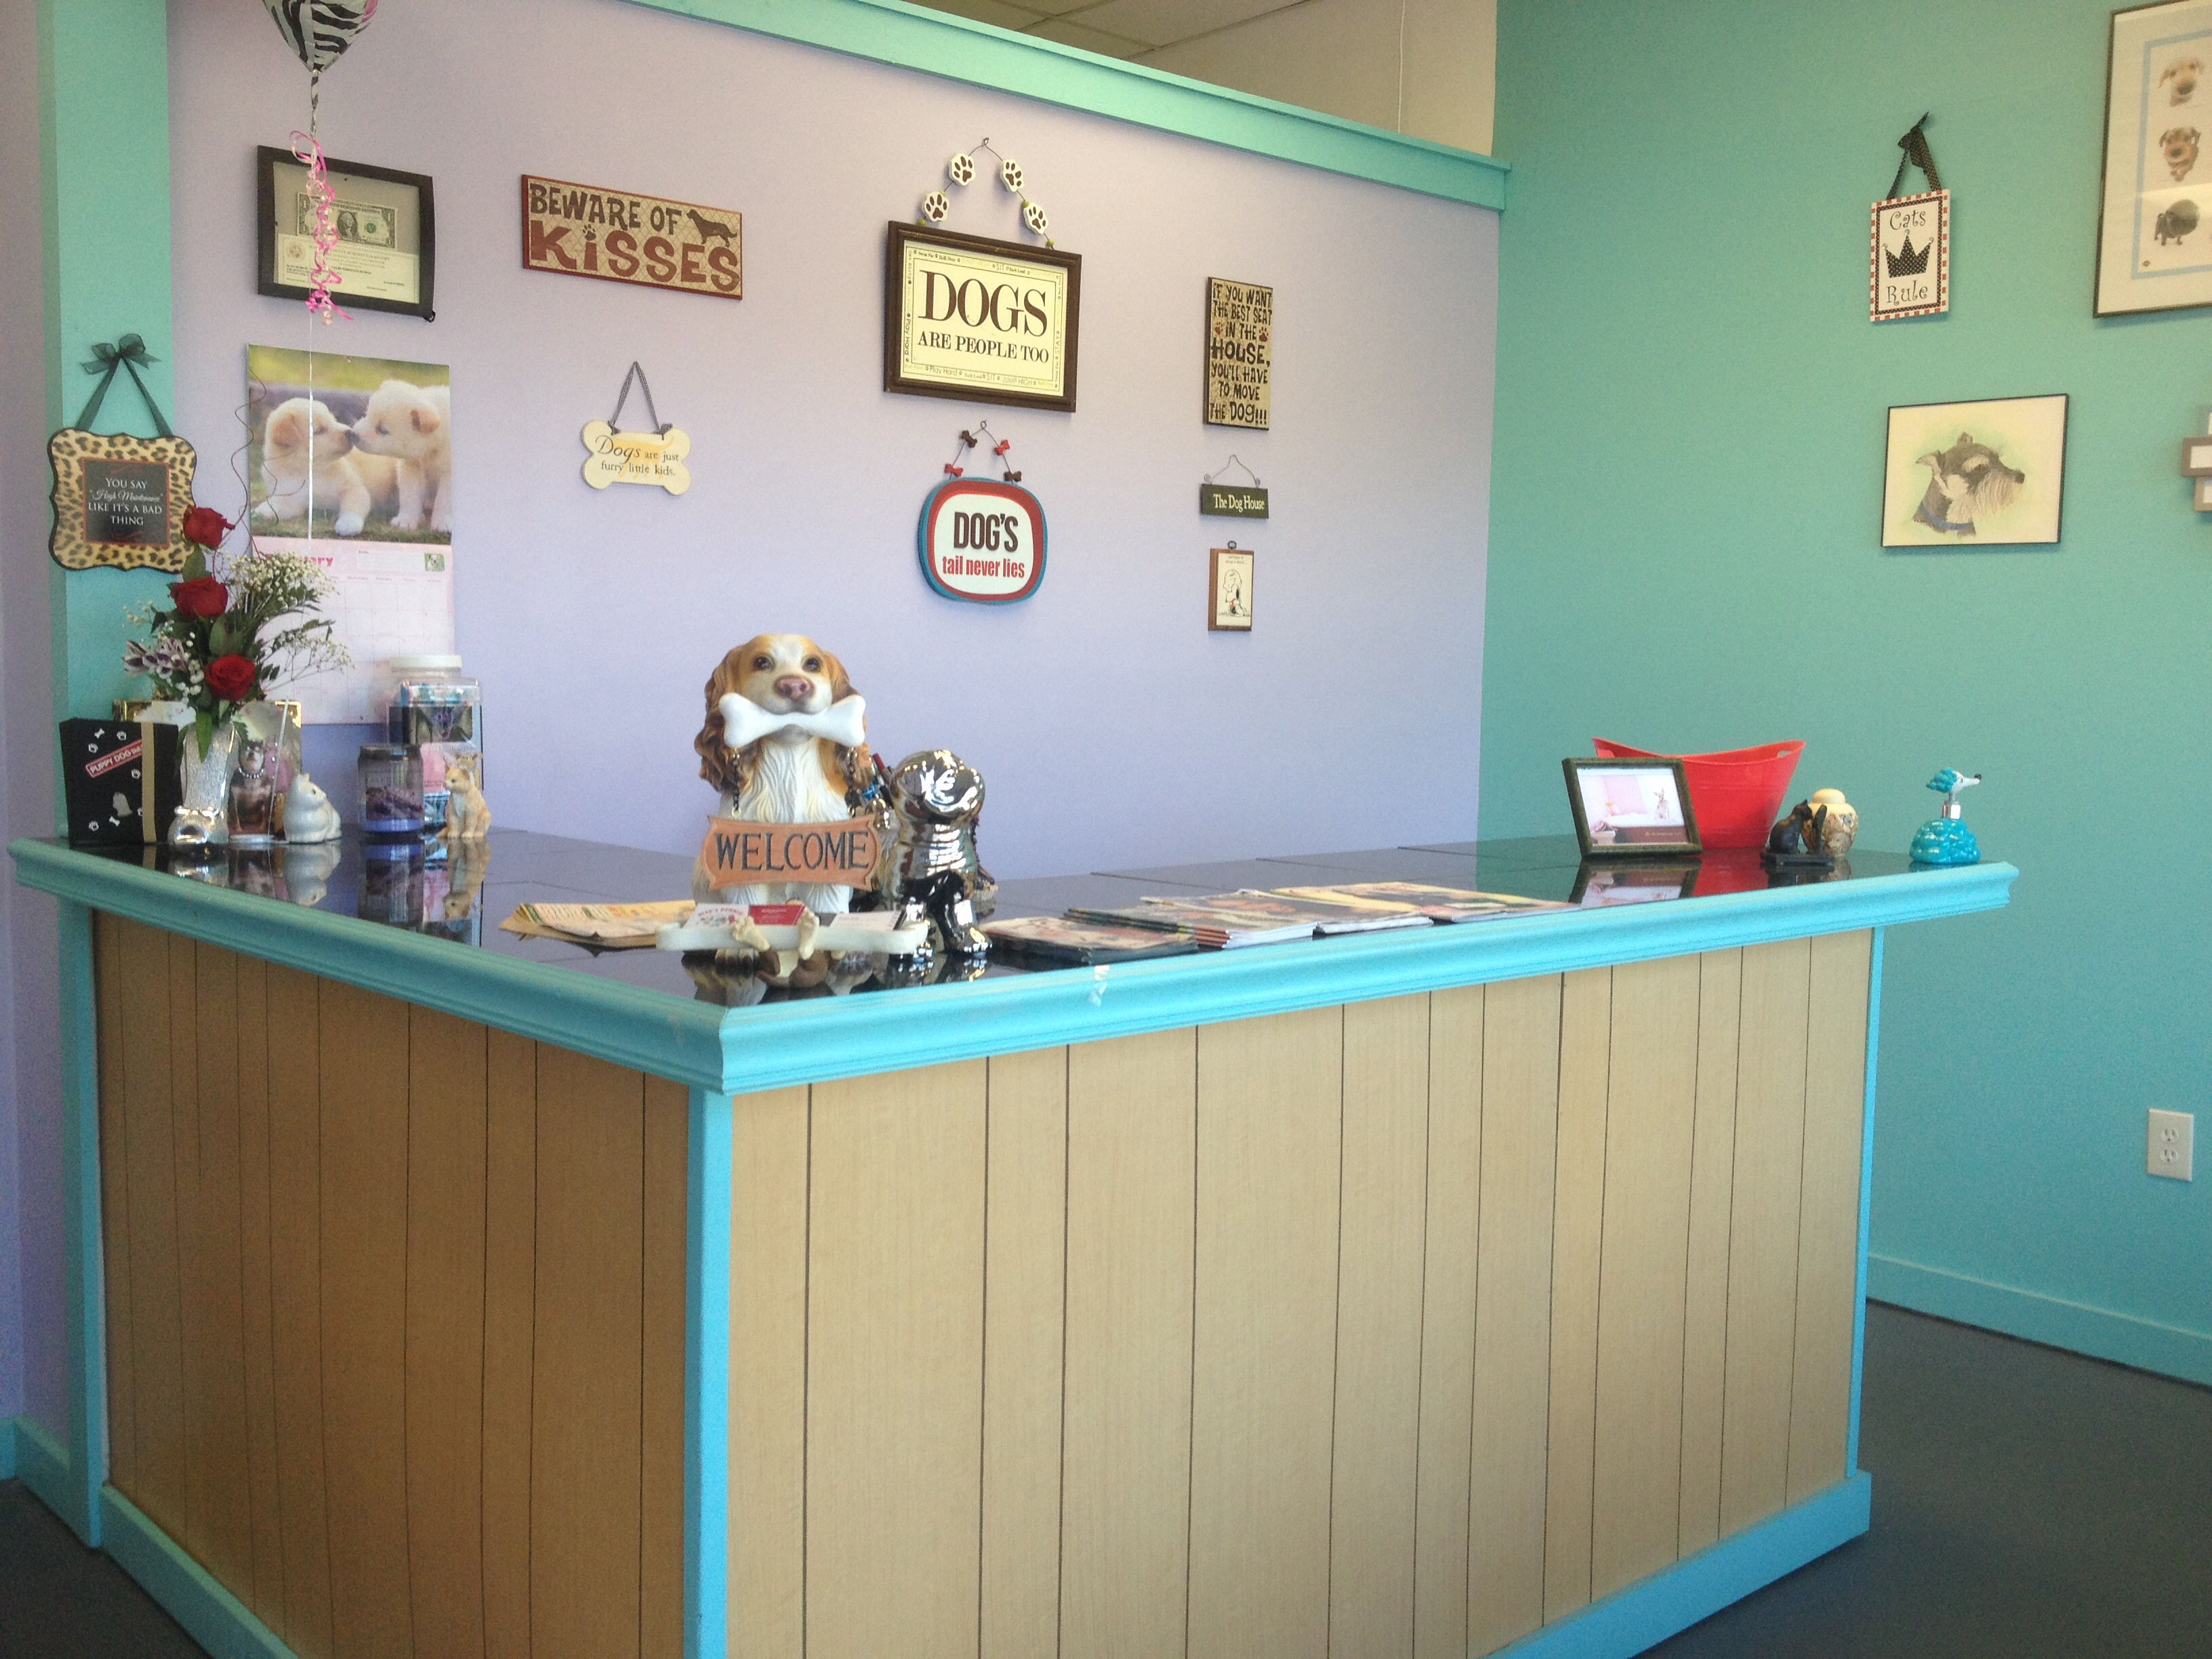 RepinnedBleu's bubbles pet salon front desk. Dog